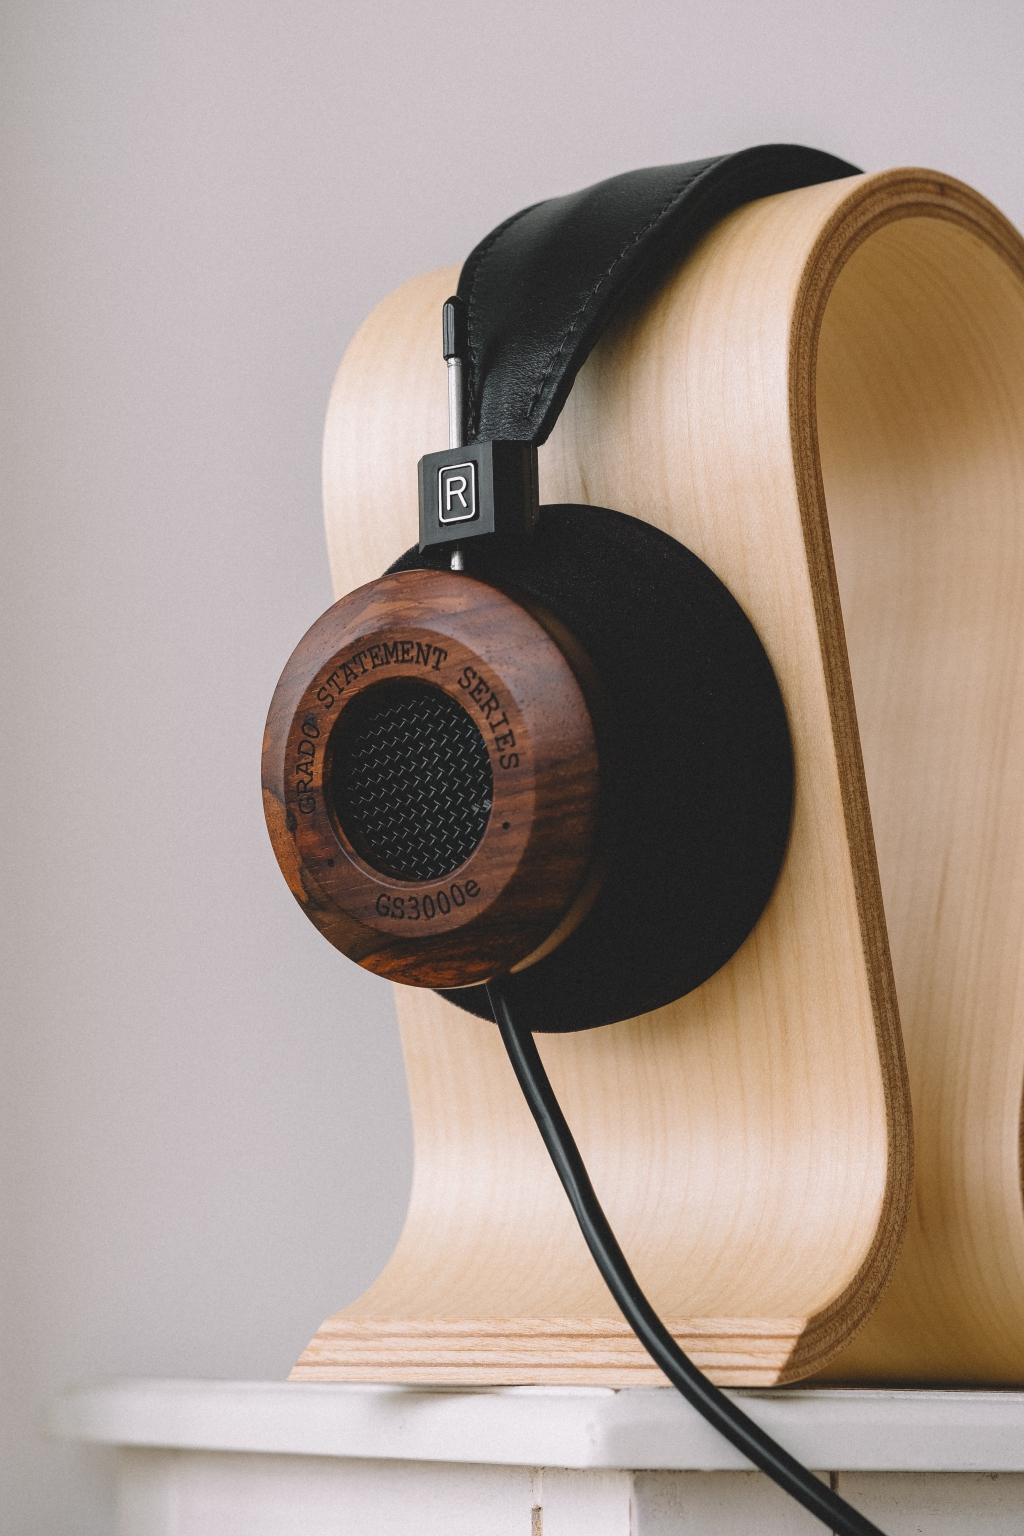 grado, grado labs, grado headphones, sunset park, brooklyn, handmade, hand-built, brooklyn headphone company, three generations of sound, cocobolo wood, stand, bedroom